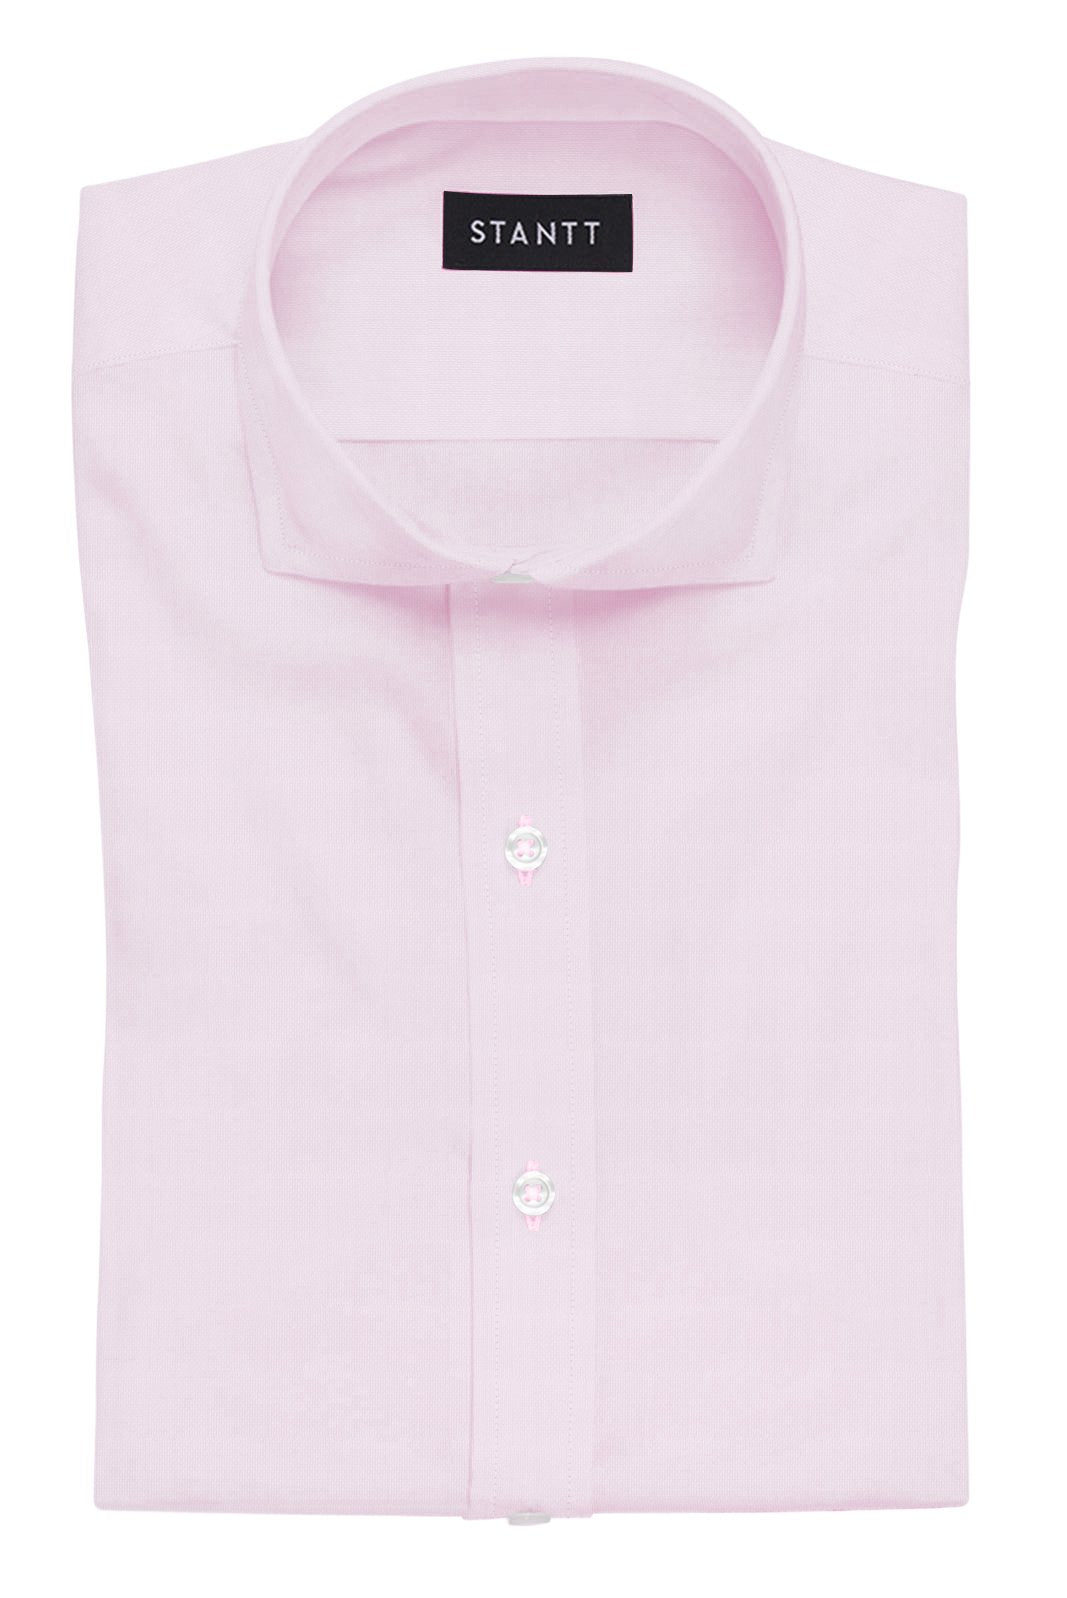 Pink Royal Oxford: Cutaway Collar, French Cuff